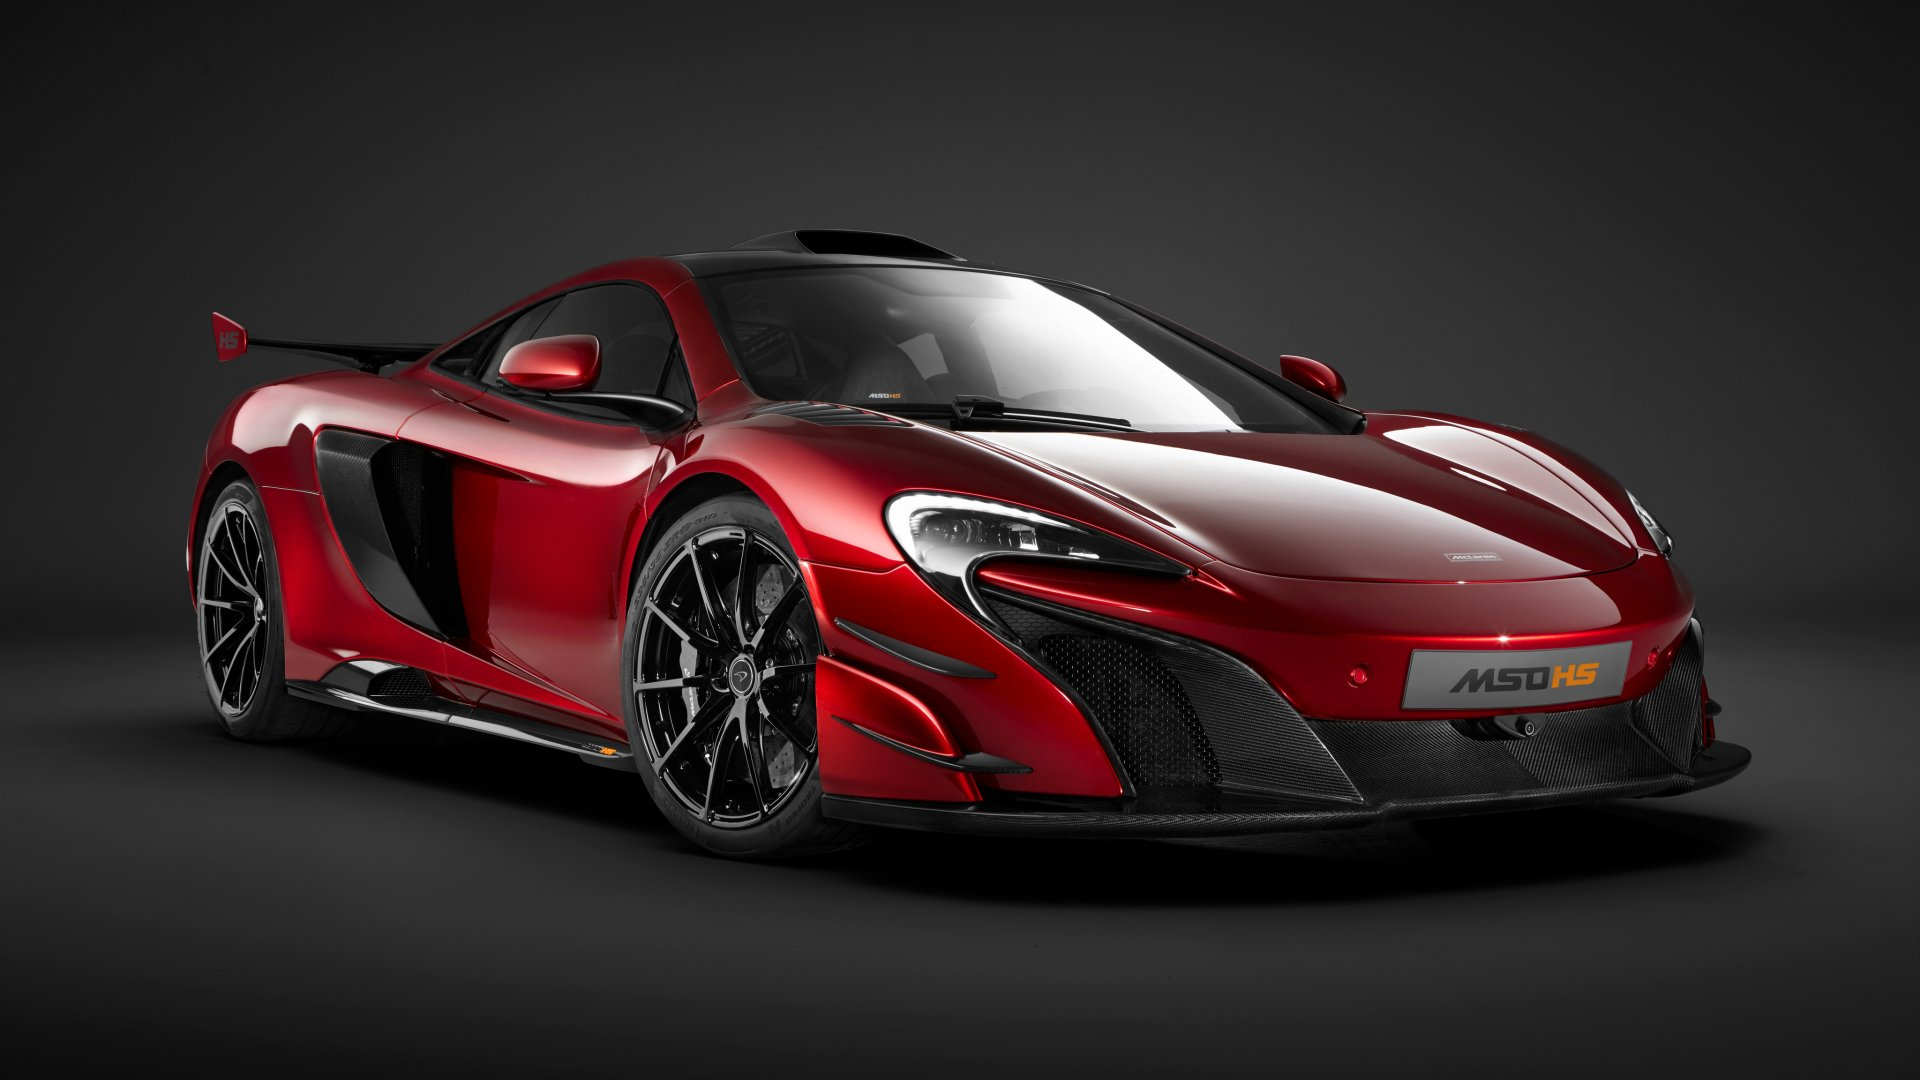 Vehicles - McLaren MSO HS  Red Car Sport Car Vehicle Car McLaren Supercar Wallpaper